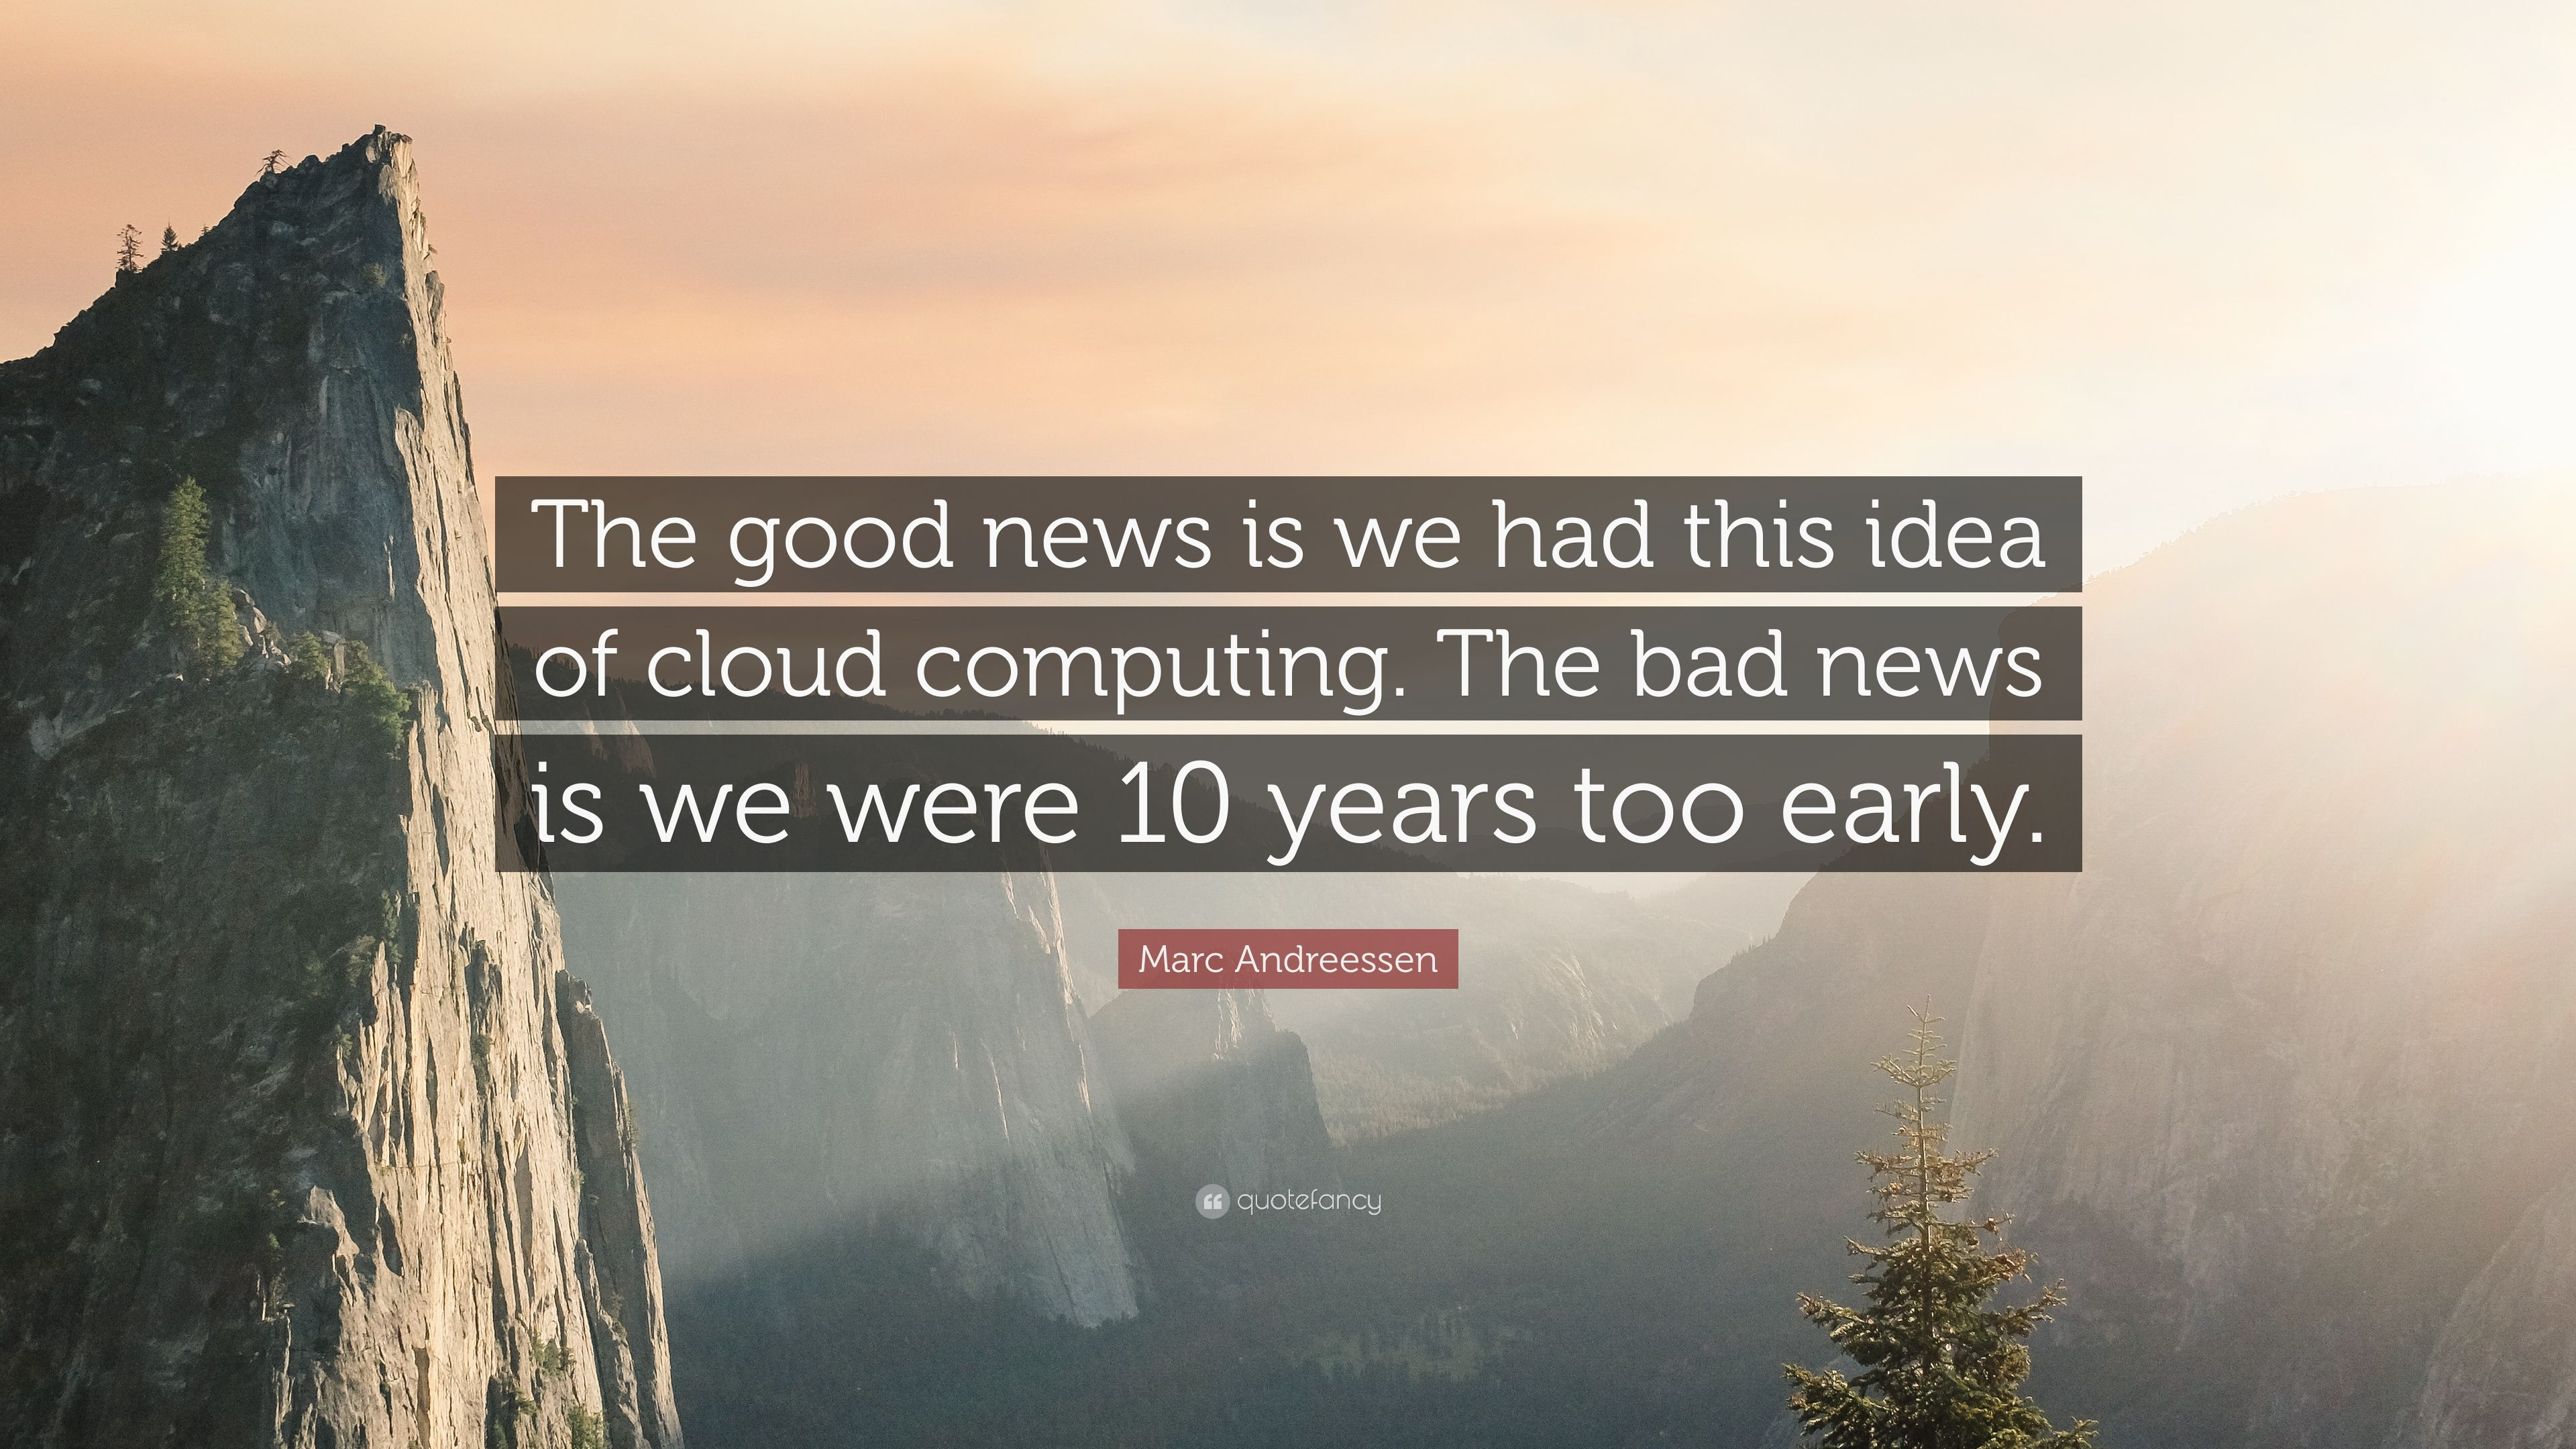 Good News Is That This Morning They >> Marc Andreessen Quote The Good News Is We Had This Idea Of Cloud